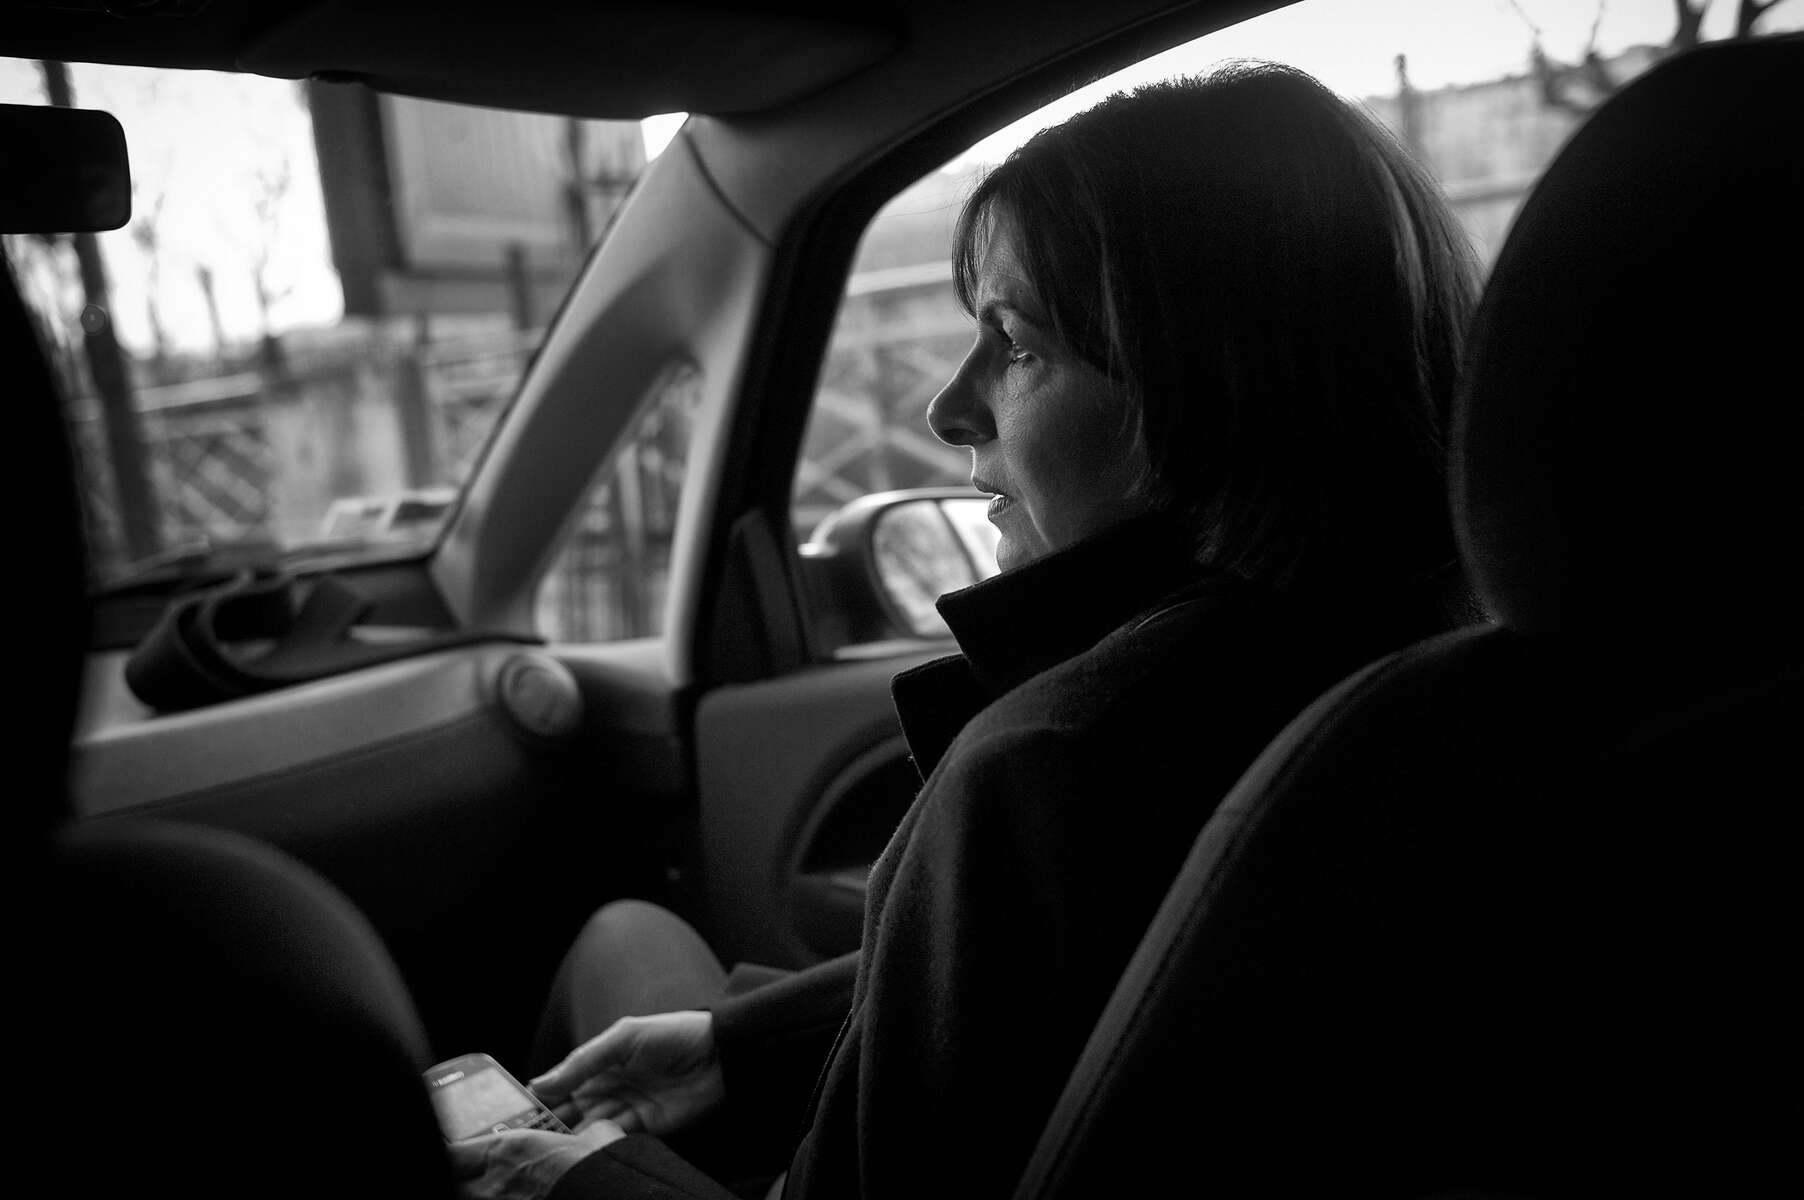 March 12, 2014.  PARIS, FRANCE- Mayoral candidate Anne Hidalgo rides in her tiny smart car to an appearance on Canal Plus.  For the first time in France's history, Paris will have a woman as a mayor - either Socialist Anne Hidalgo or Center-Right Nathalie Kosciusko-Morizet.  Photo by Scout Tufankjian